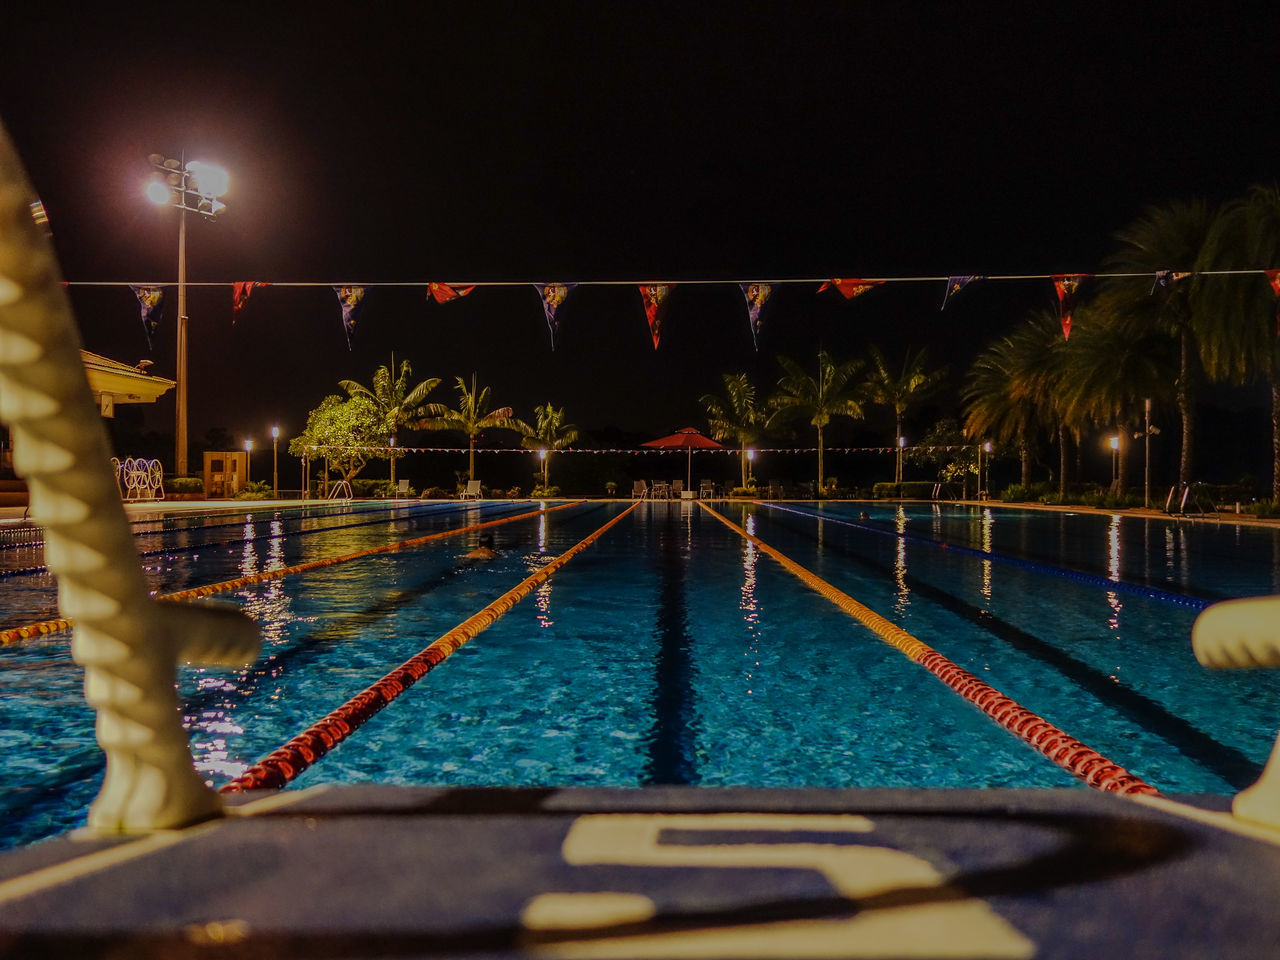 night, swimming pool, illuminated, water, competition, swimming lane marker, outdoors, real people, sky